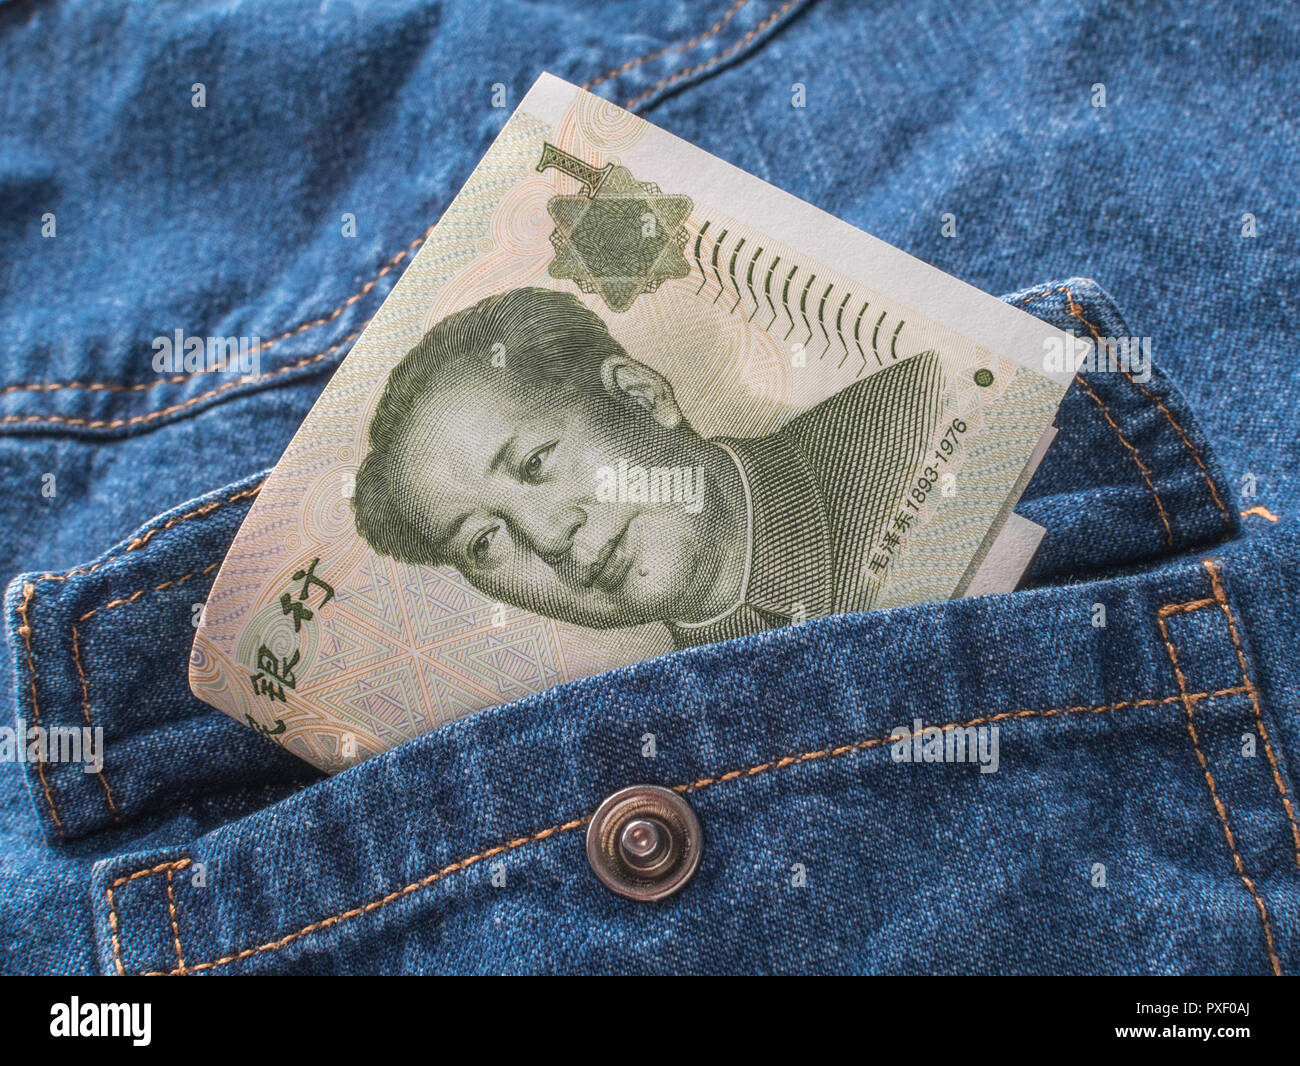 Chinese Yuan / Renminbi banknotes with pocket - metaphor for personal earnings, Chinese wages, wage levels. - Stock Image